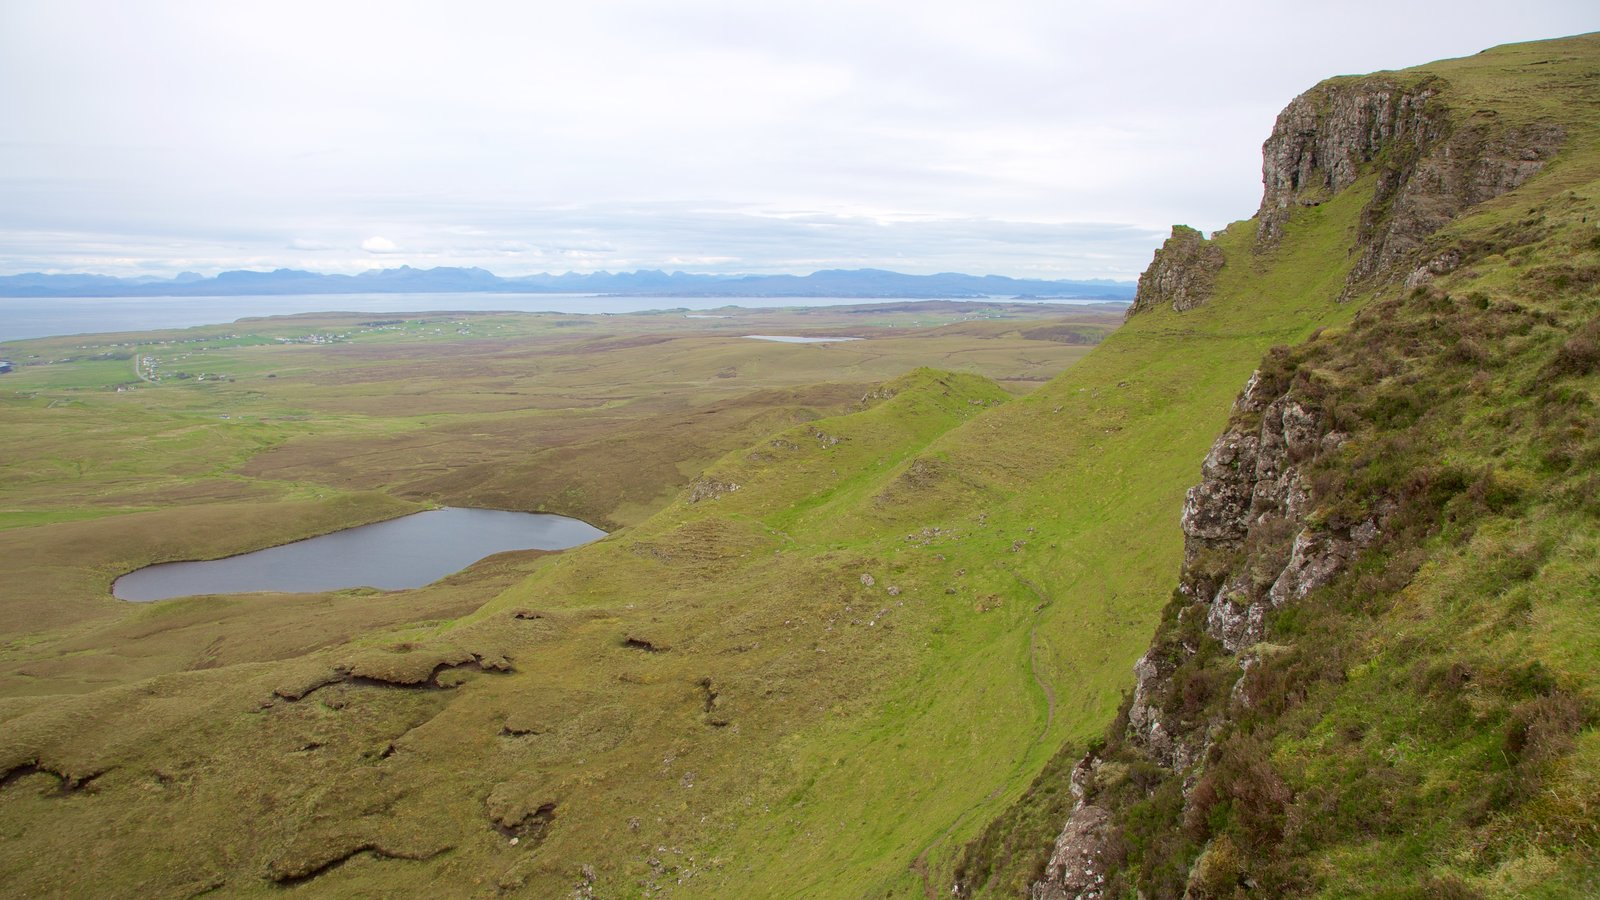 Quiraing showing a pond, tranquil scenes and mountains